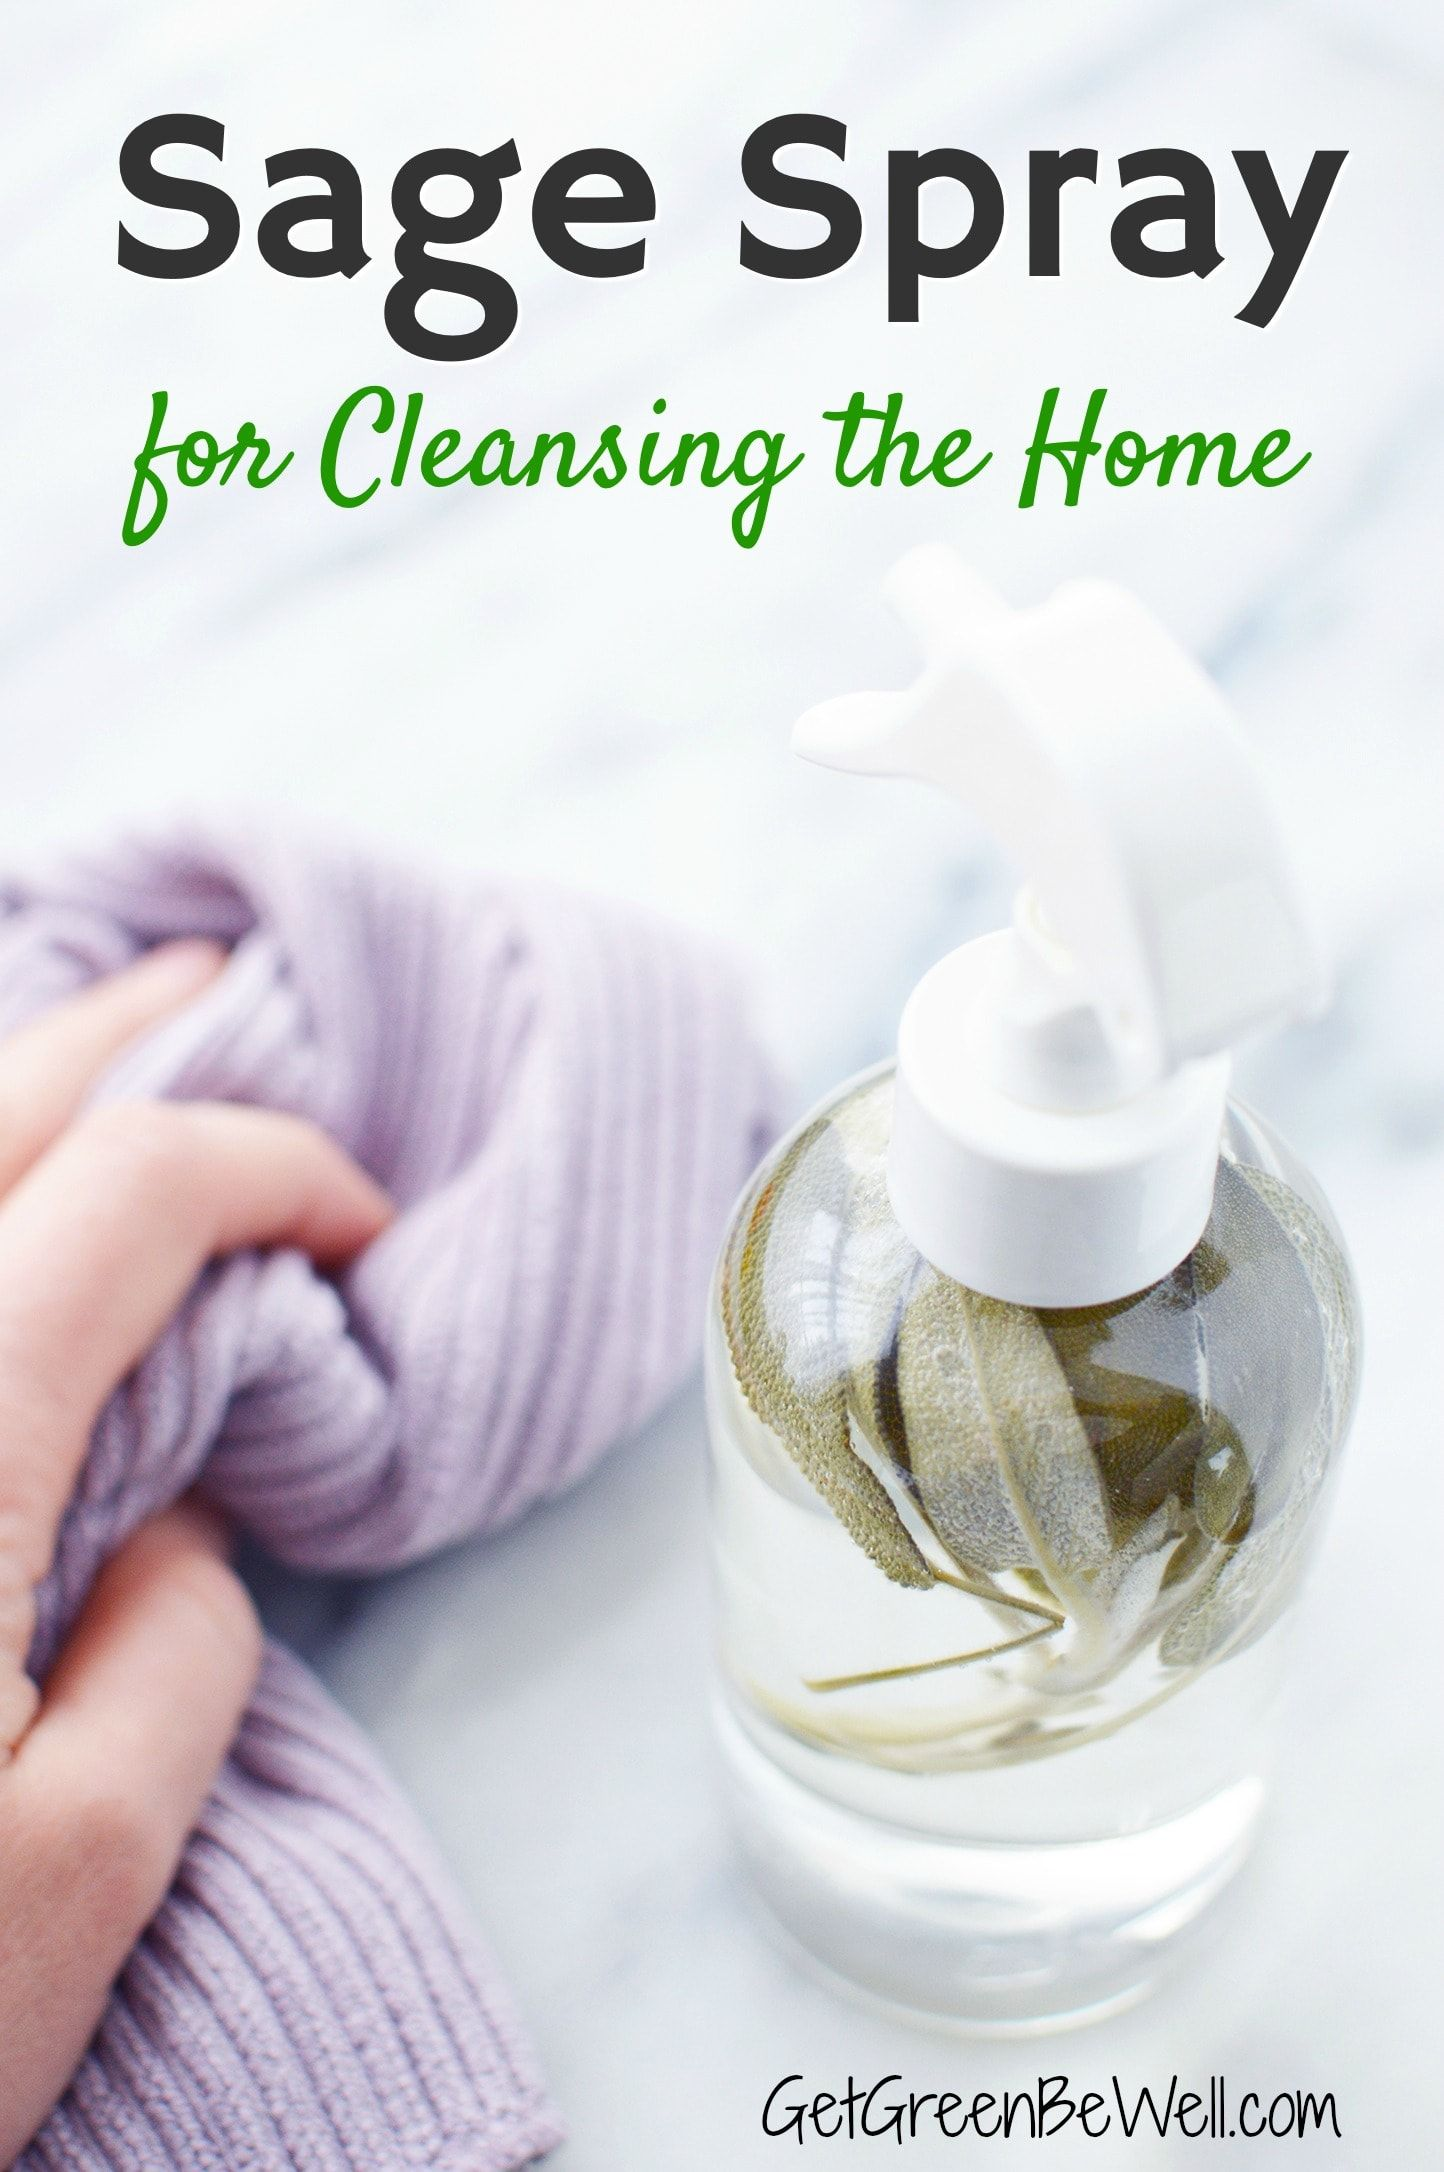 Diy Sage Spray For Cleansing Home Cleaning Hacks House Cleaning Tips Clean House